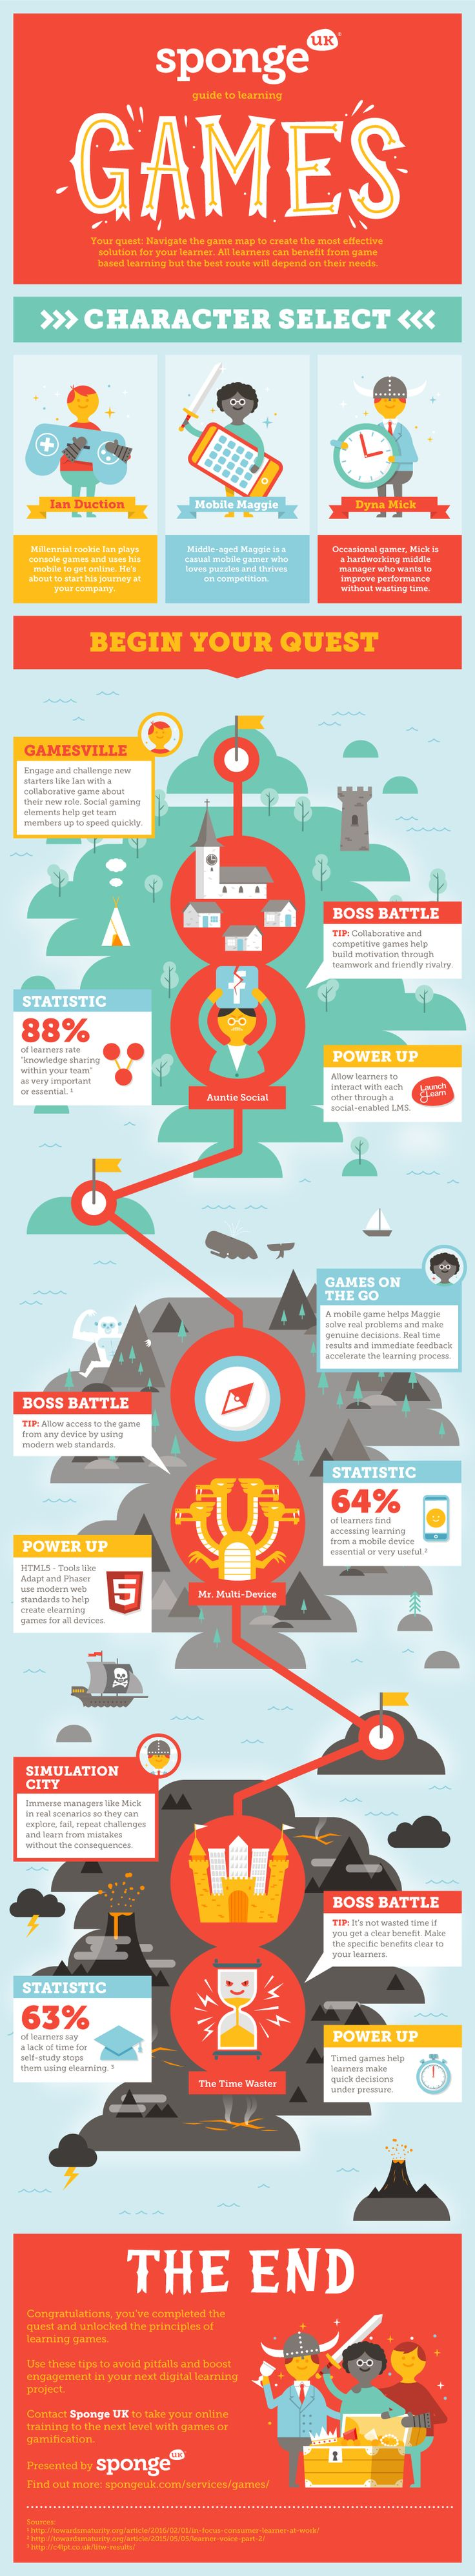 Guide to Learning Games Infographic - http://elearninginfographics.com/guide-to-learning-games/